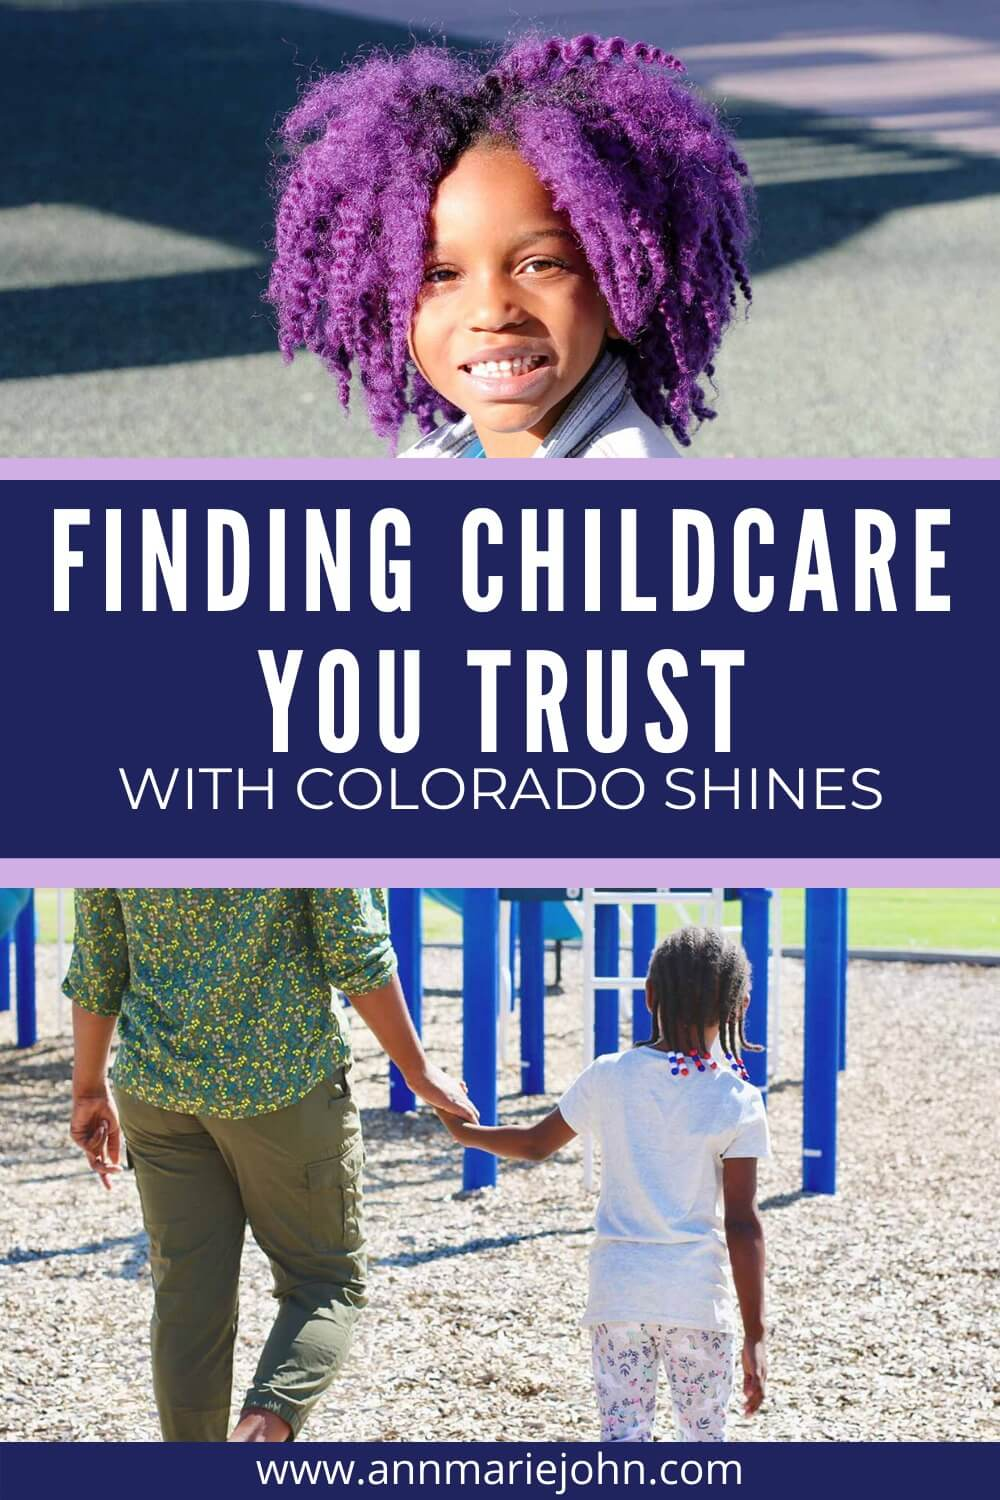 Finding Child Care You Trust With Colorado Shines